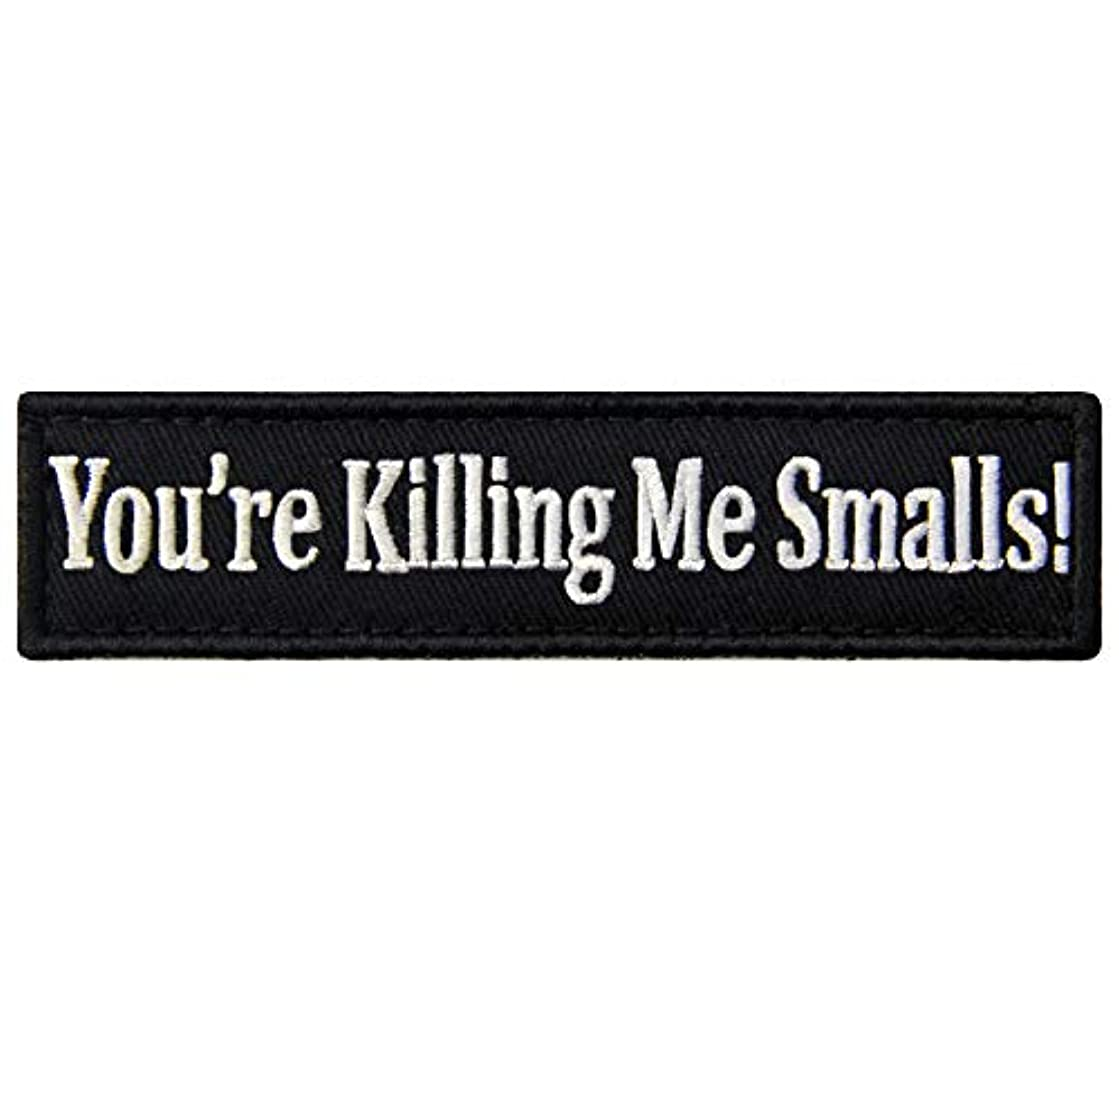 You're Killing Me Smalls Morale Patch Funny Tactical Embroidered Applique Fastener Hook & Loop Emblem